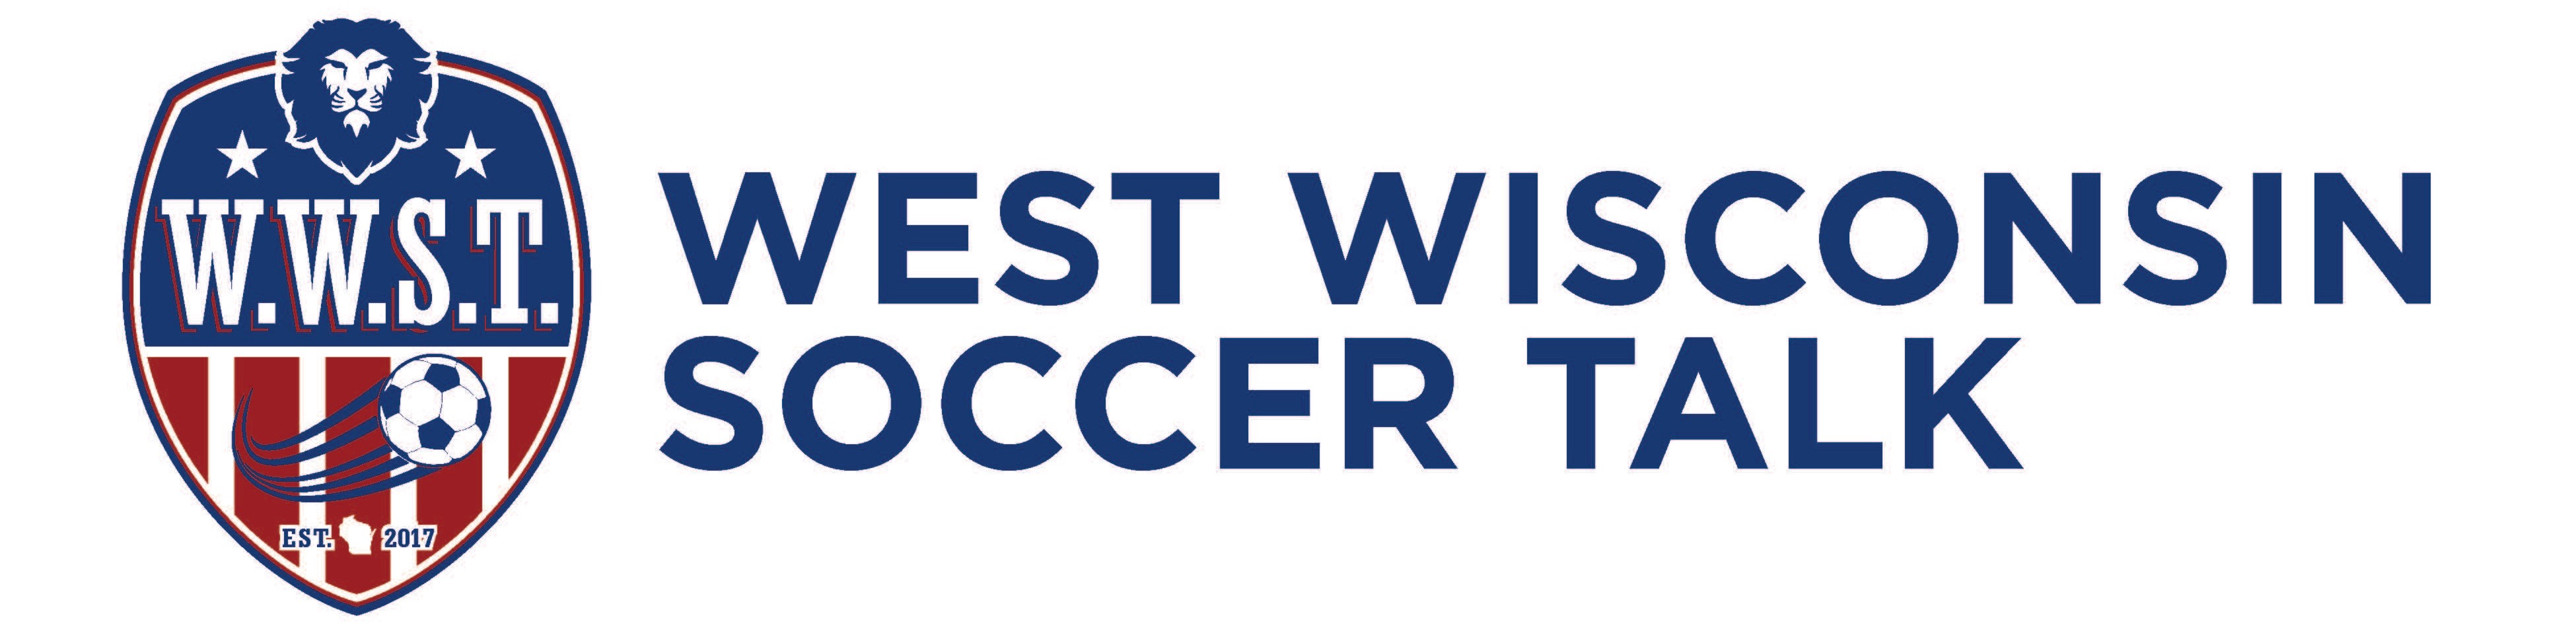 West Wisconsin Soccer Talk